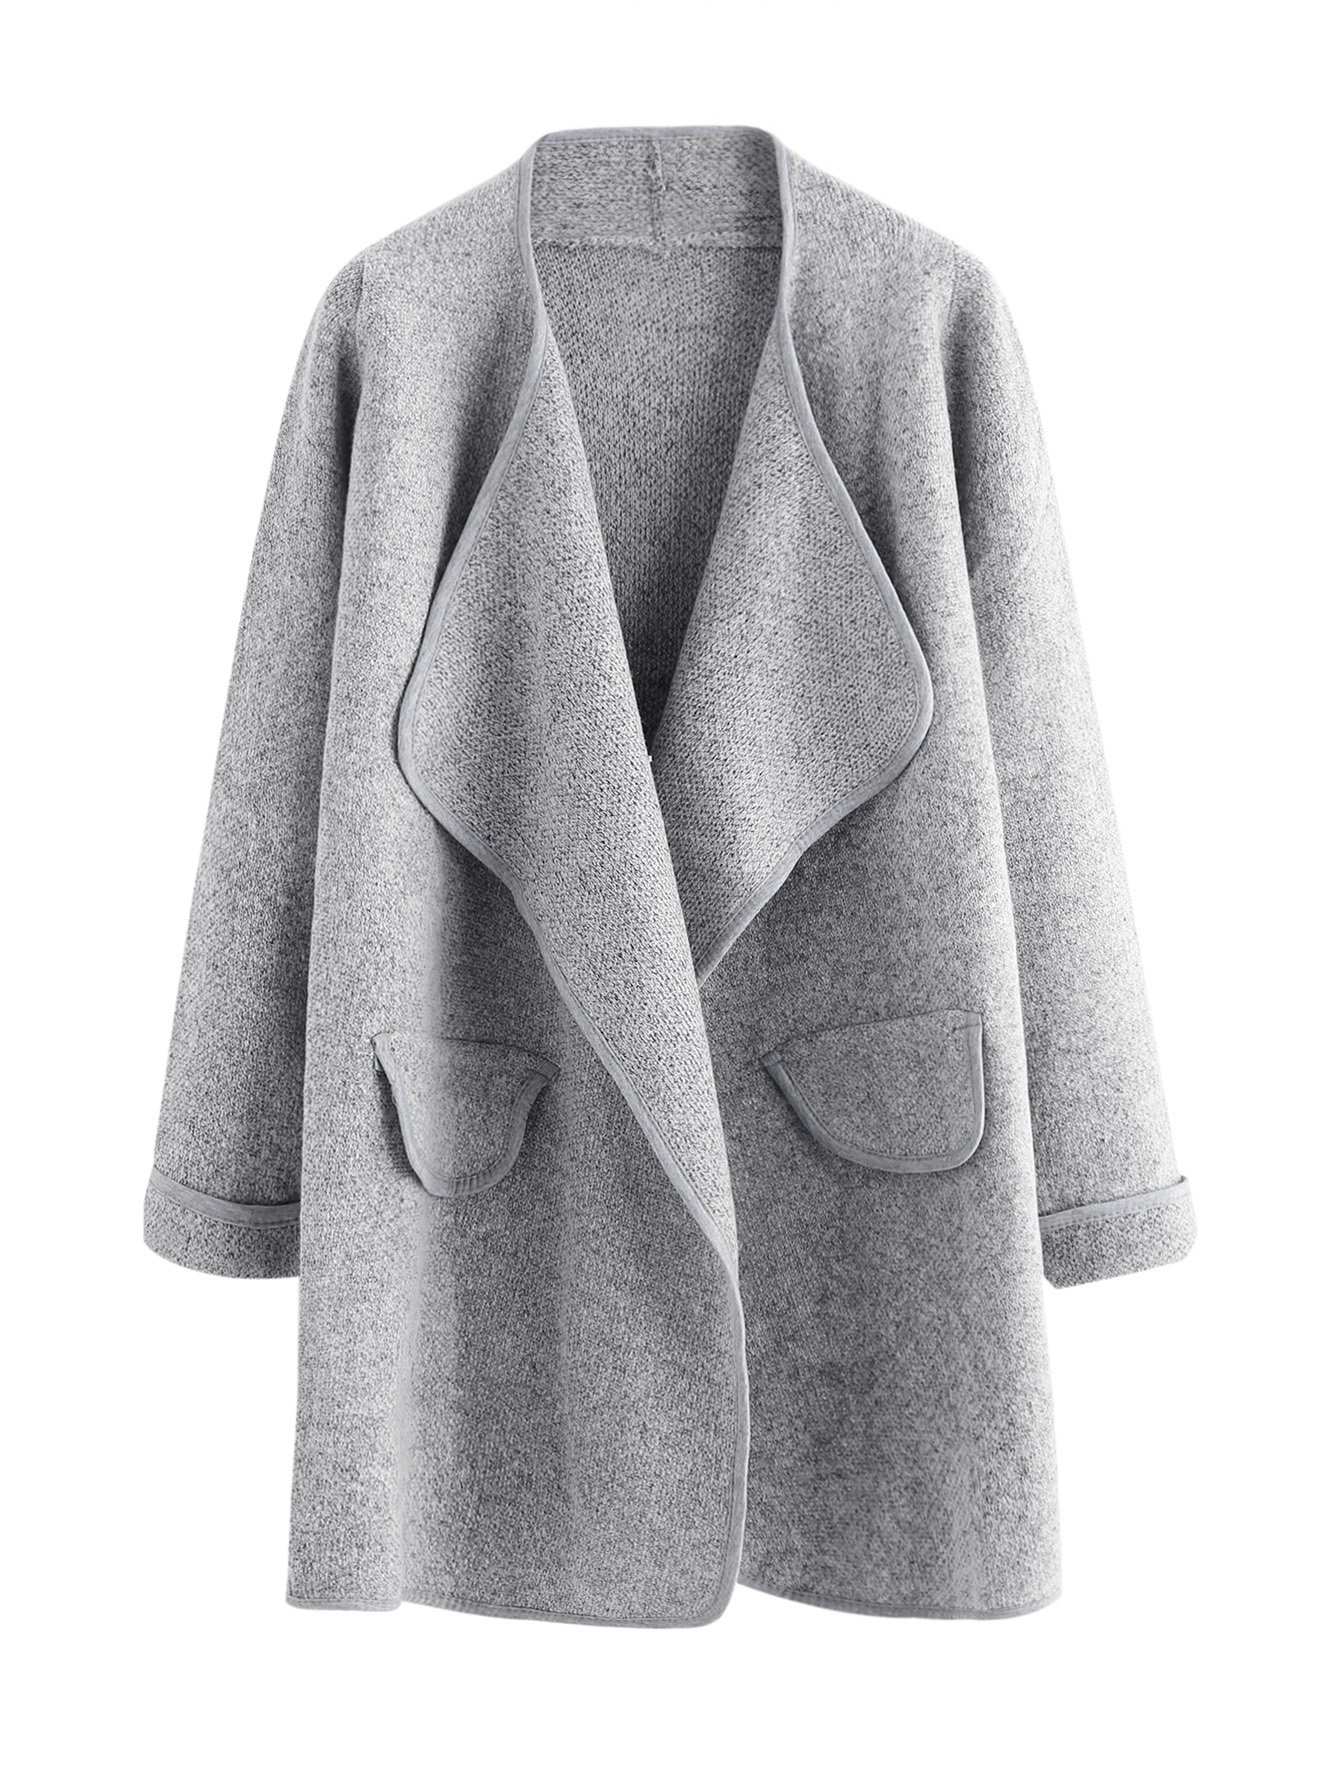 SheIn Women's Long Sleeve Cardigan Open Front Loose Sweater Coat One-Size Grey